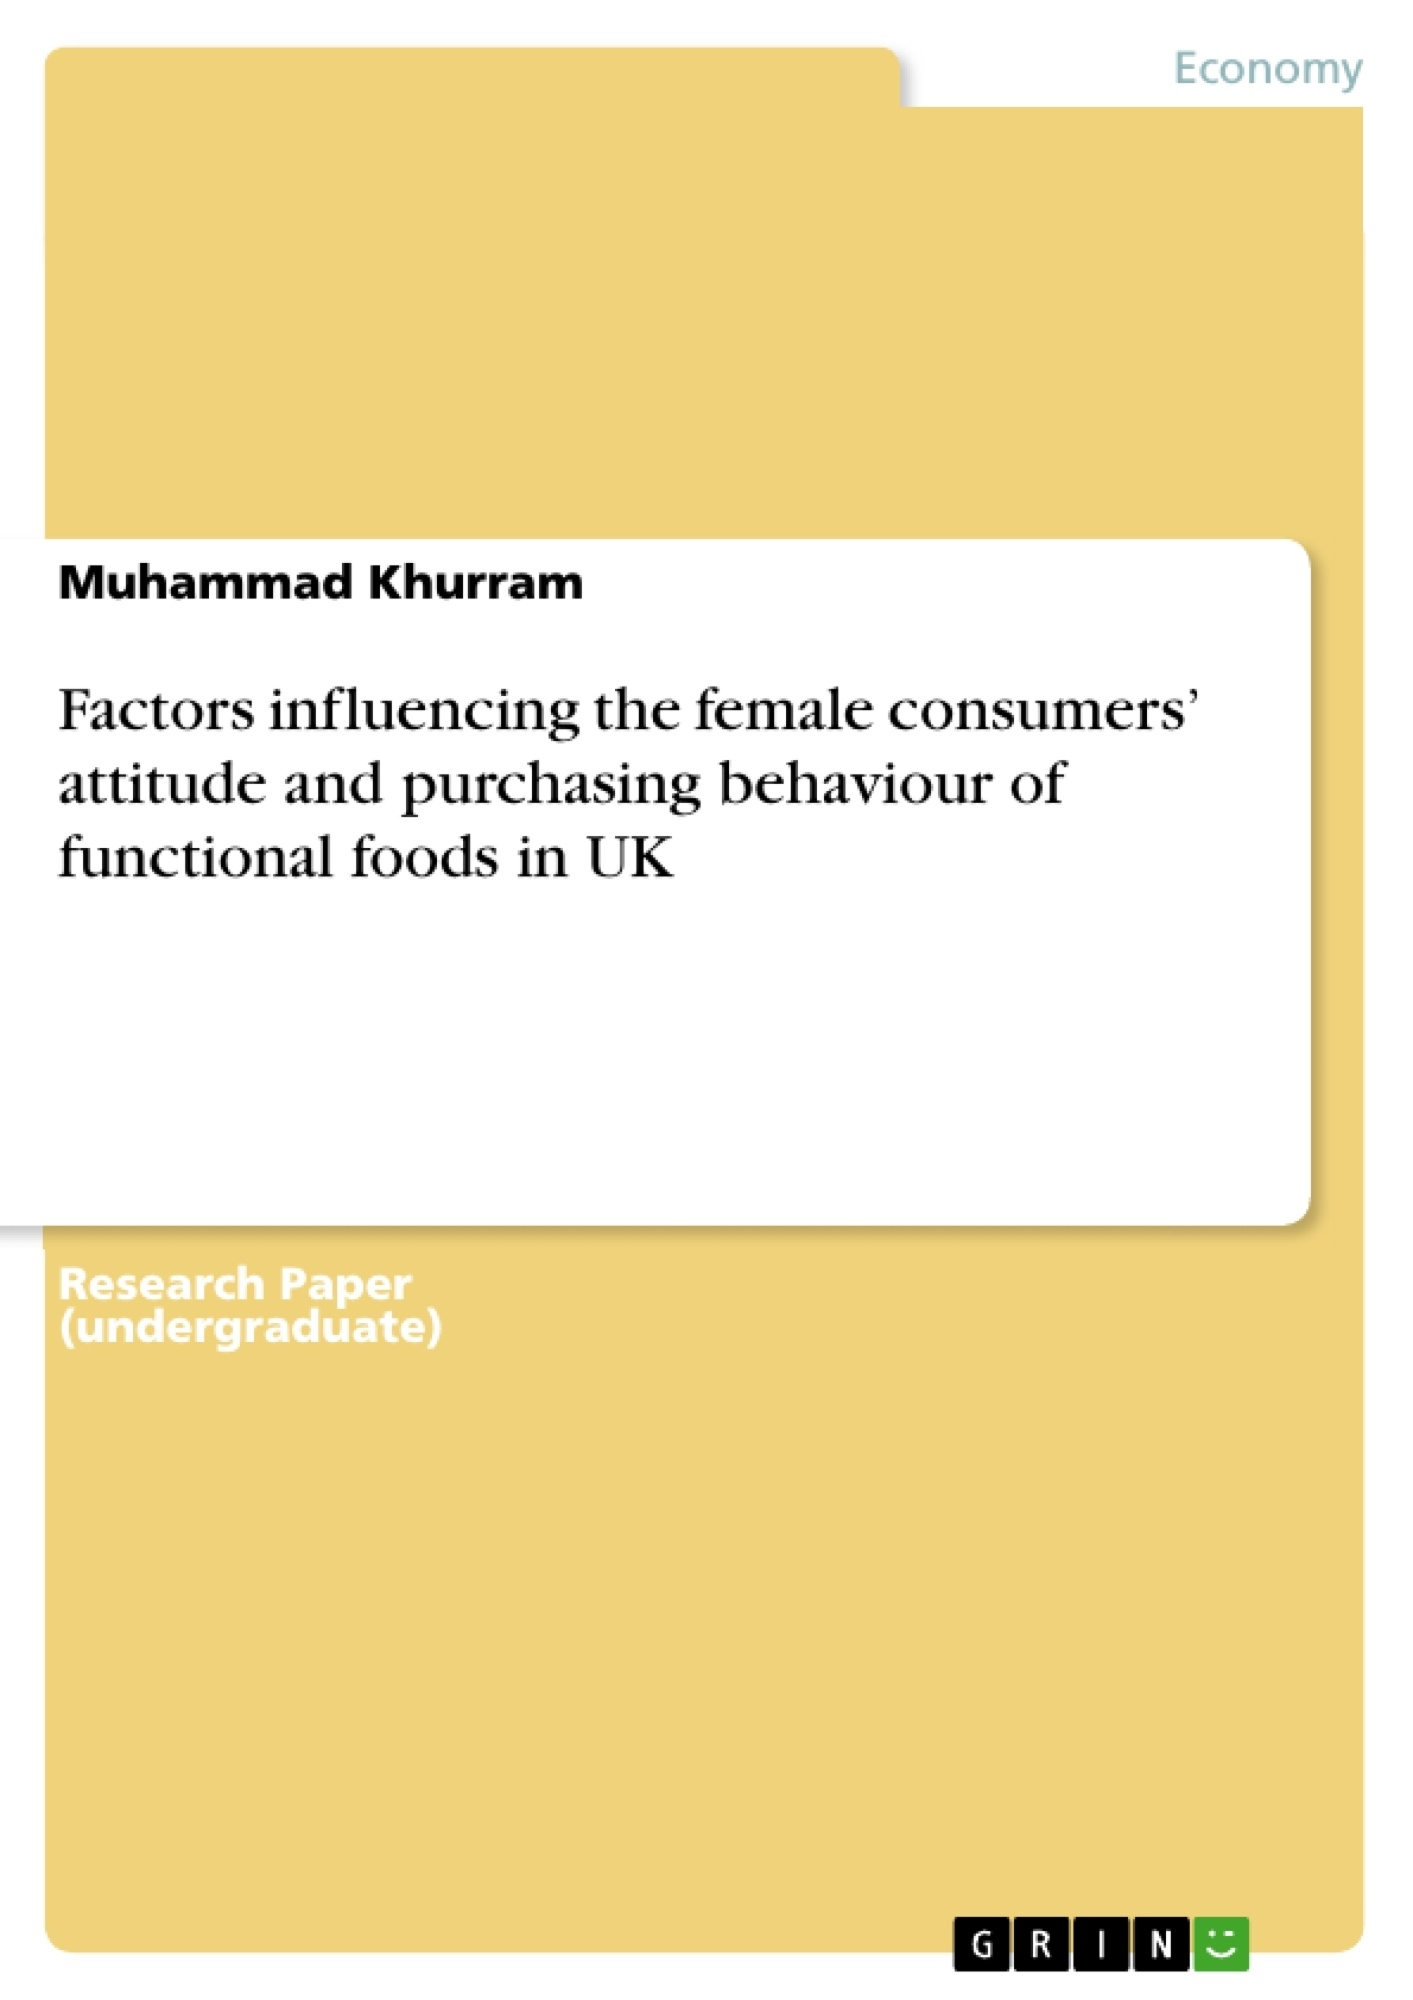 Title: Factors influencing the female consumers' attitude and purchasing behaviour of functional foods in UK